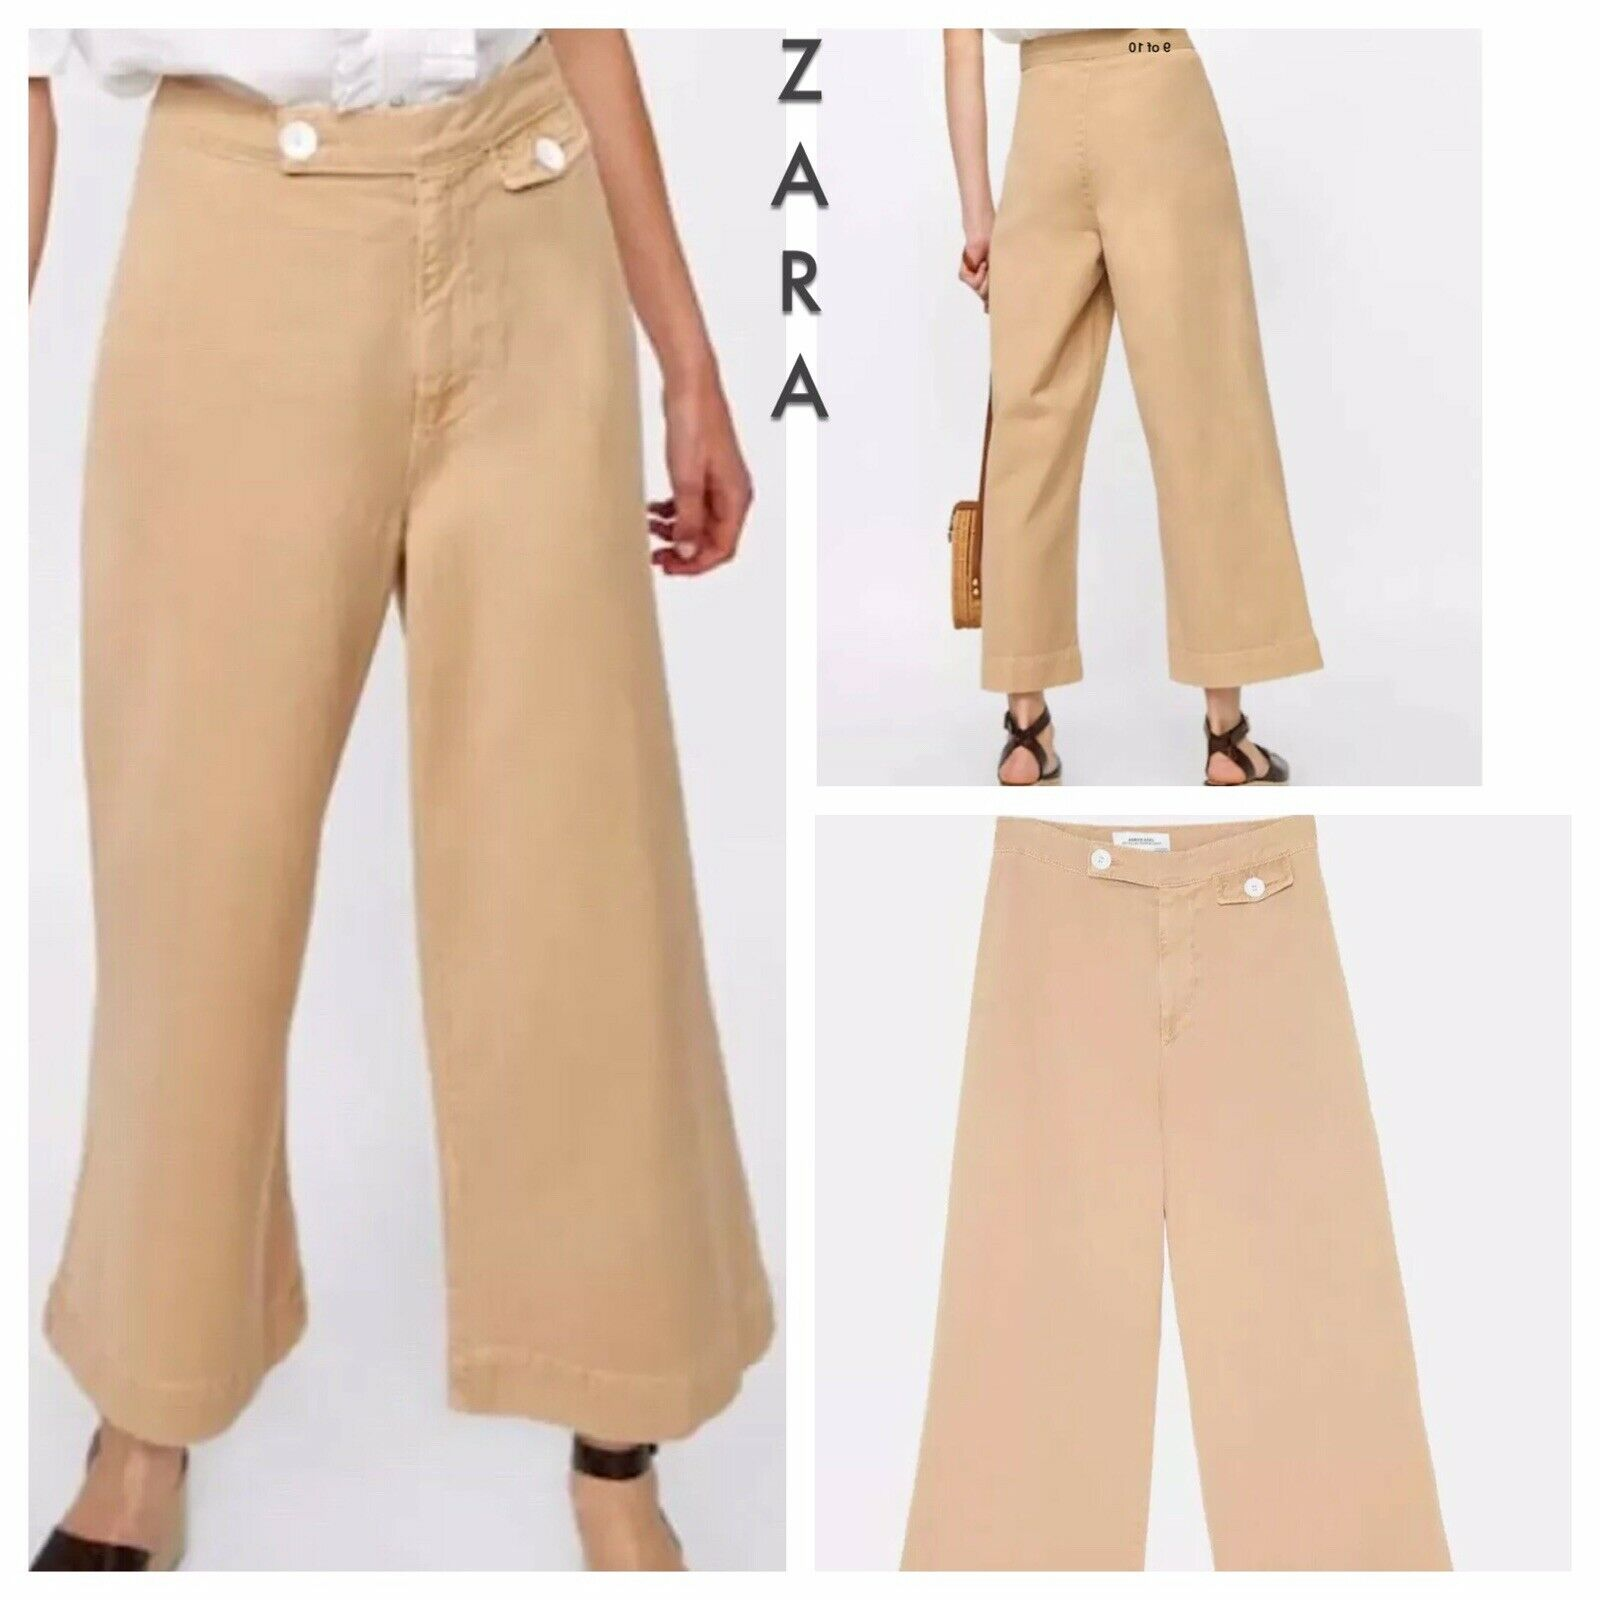 Zara NWT  Jean Marine Denim Culotte Wide Leg Crop Jeans Trousers Pants Size 4